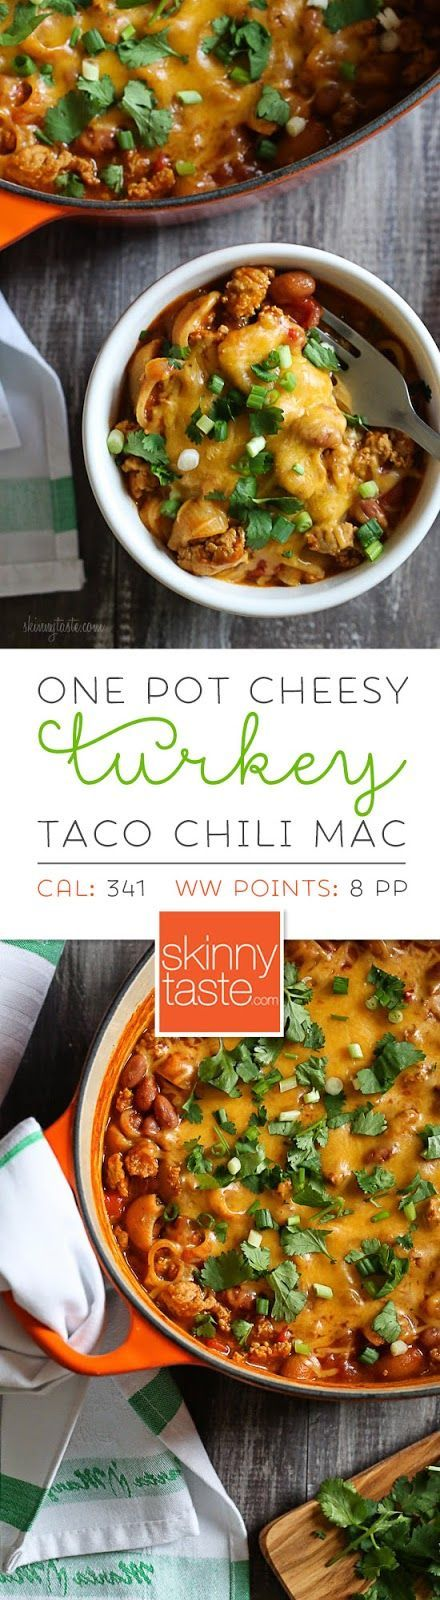 One Pot Cheesy Turkey Taco Chili Mac- loved it!